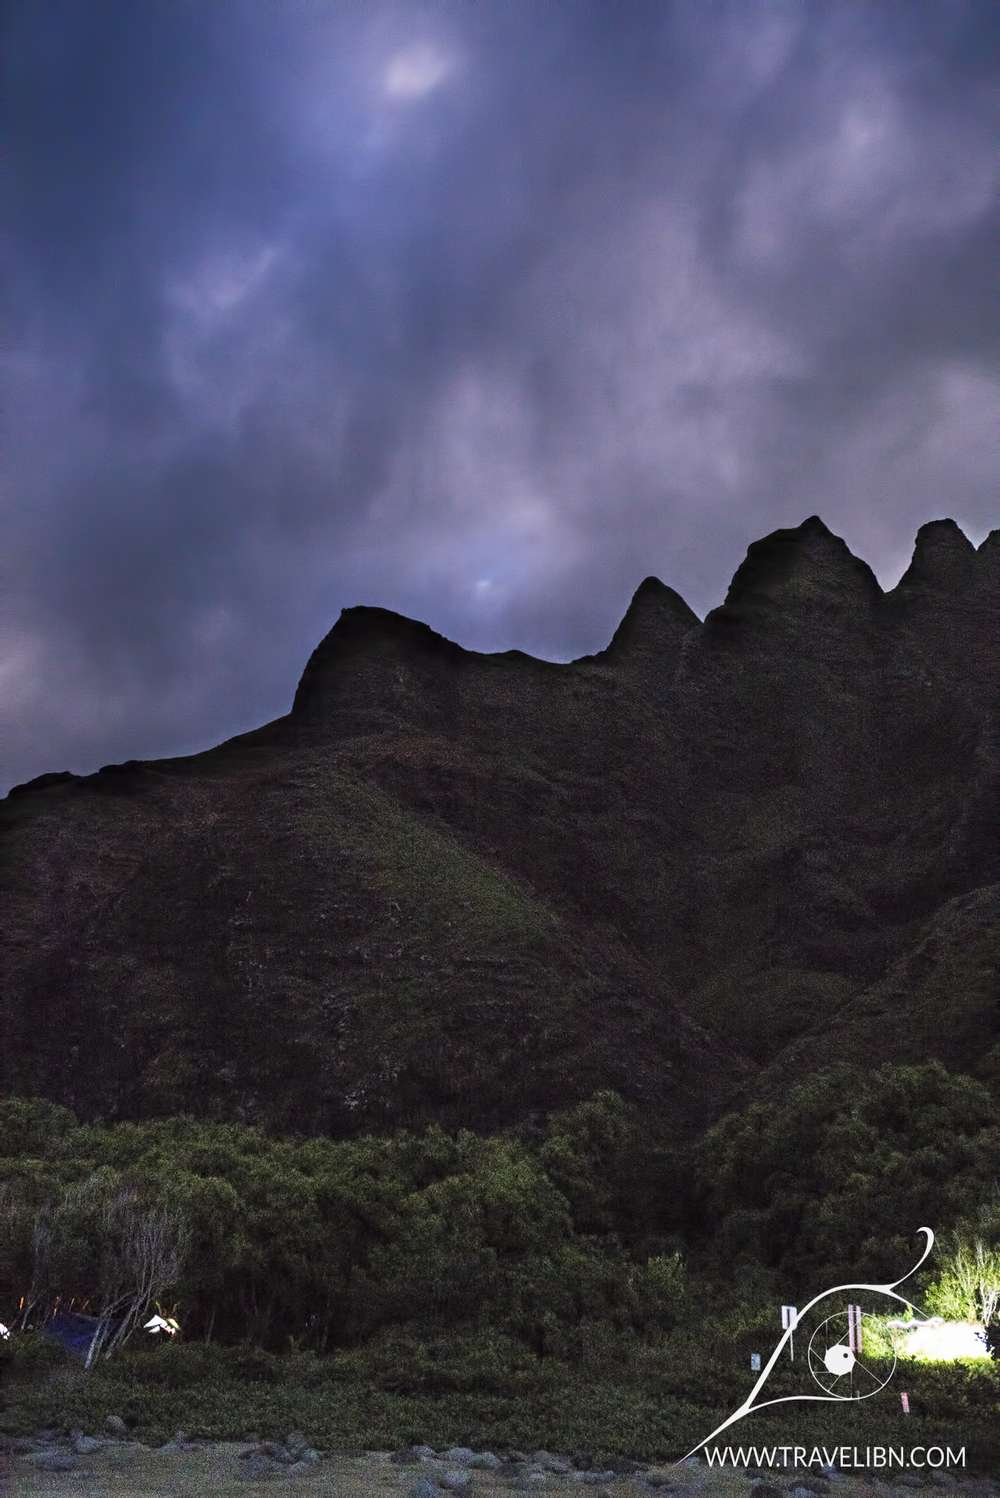 Kalalau Valley at night